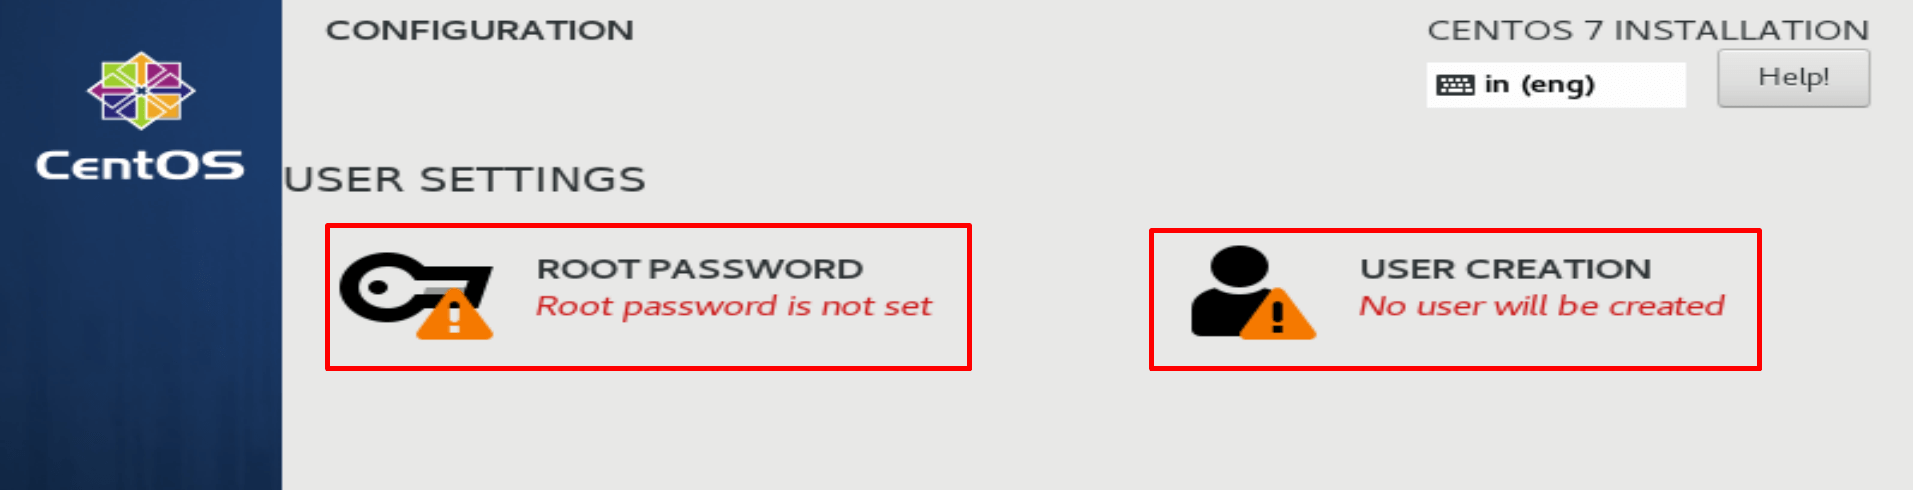 set root password and create user during centos installation